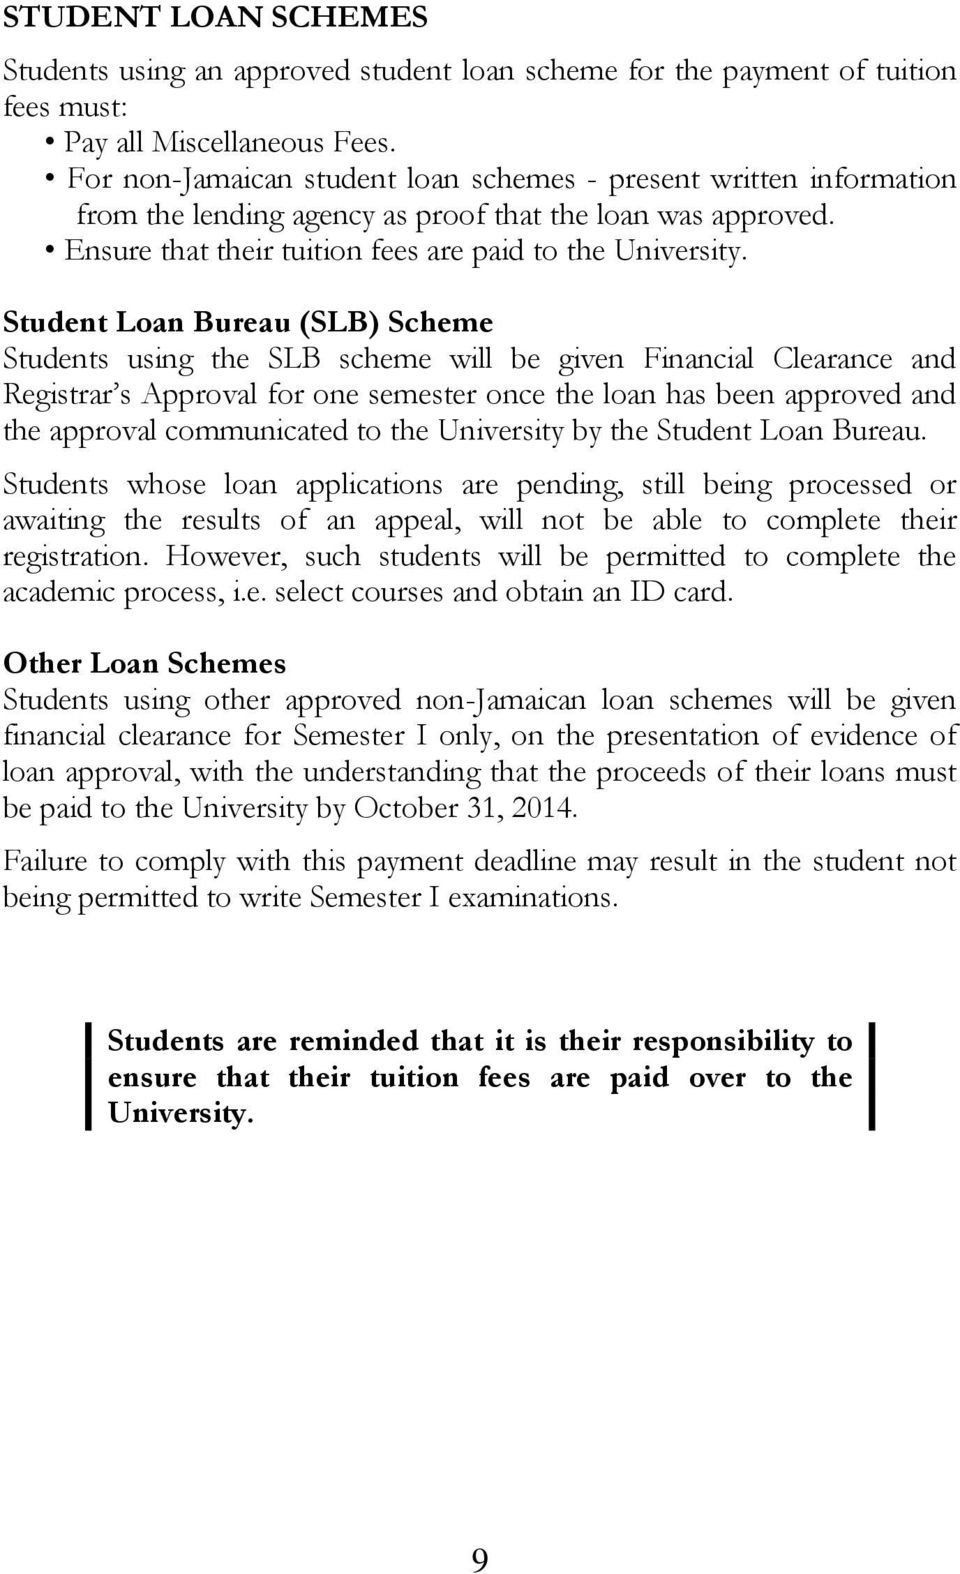 Student Loan Bureau (SLB) Scheme using the SLB scheme will be given Financial Clearance and Registrar s Approval for one semester once the loan has been approved and the approval communicated to the